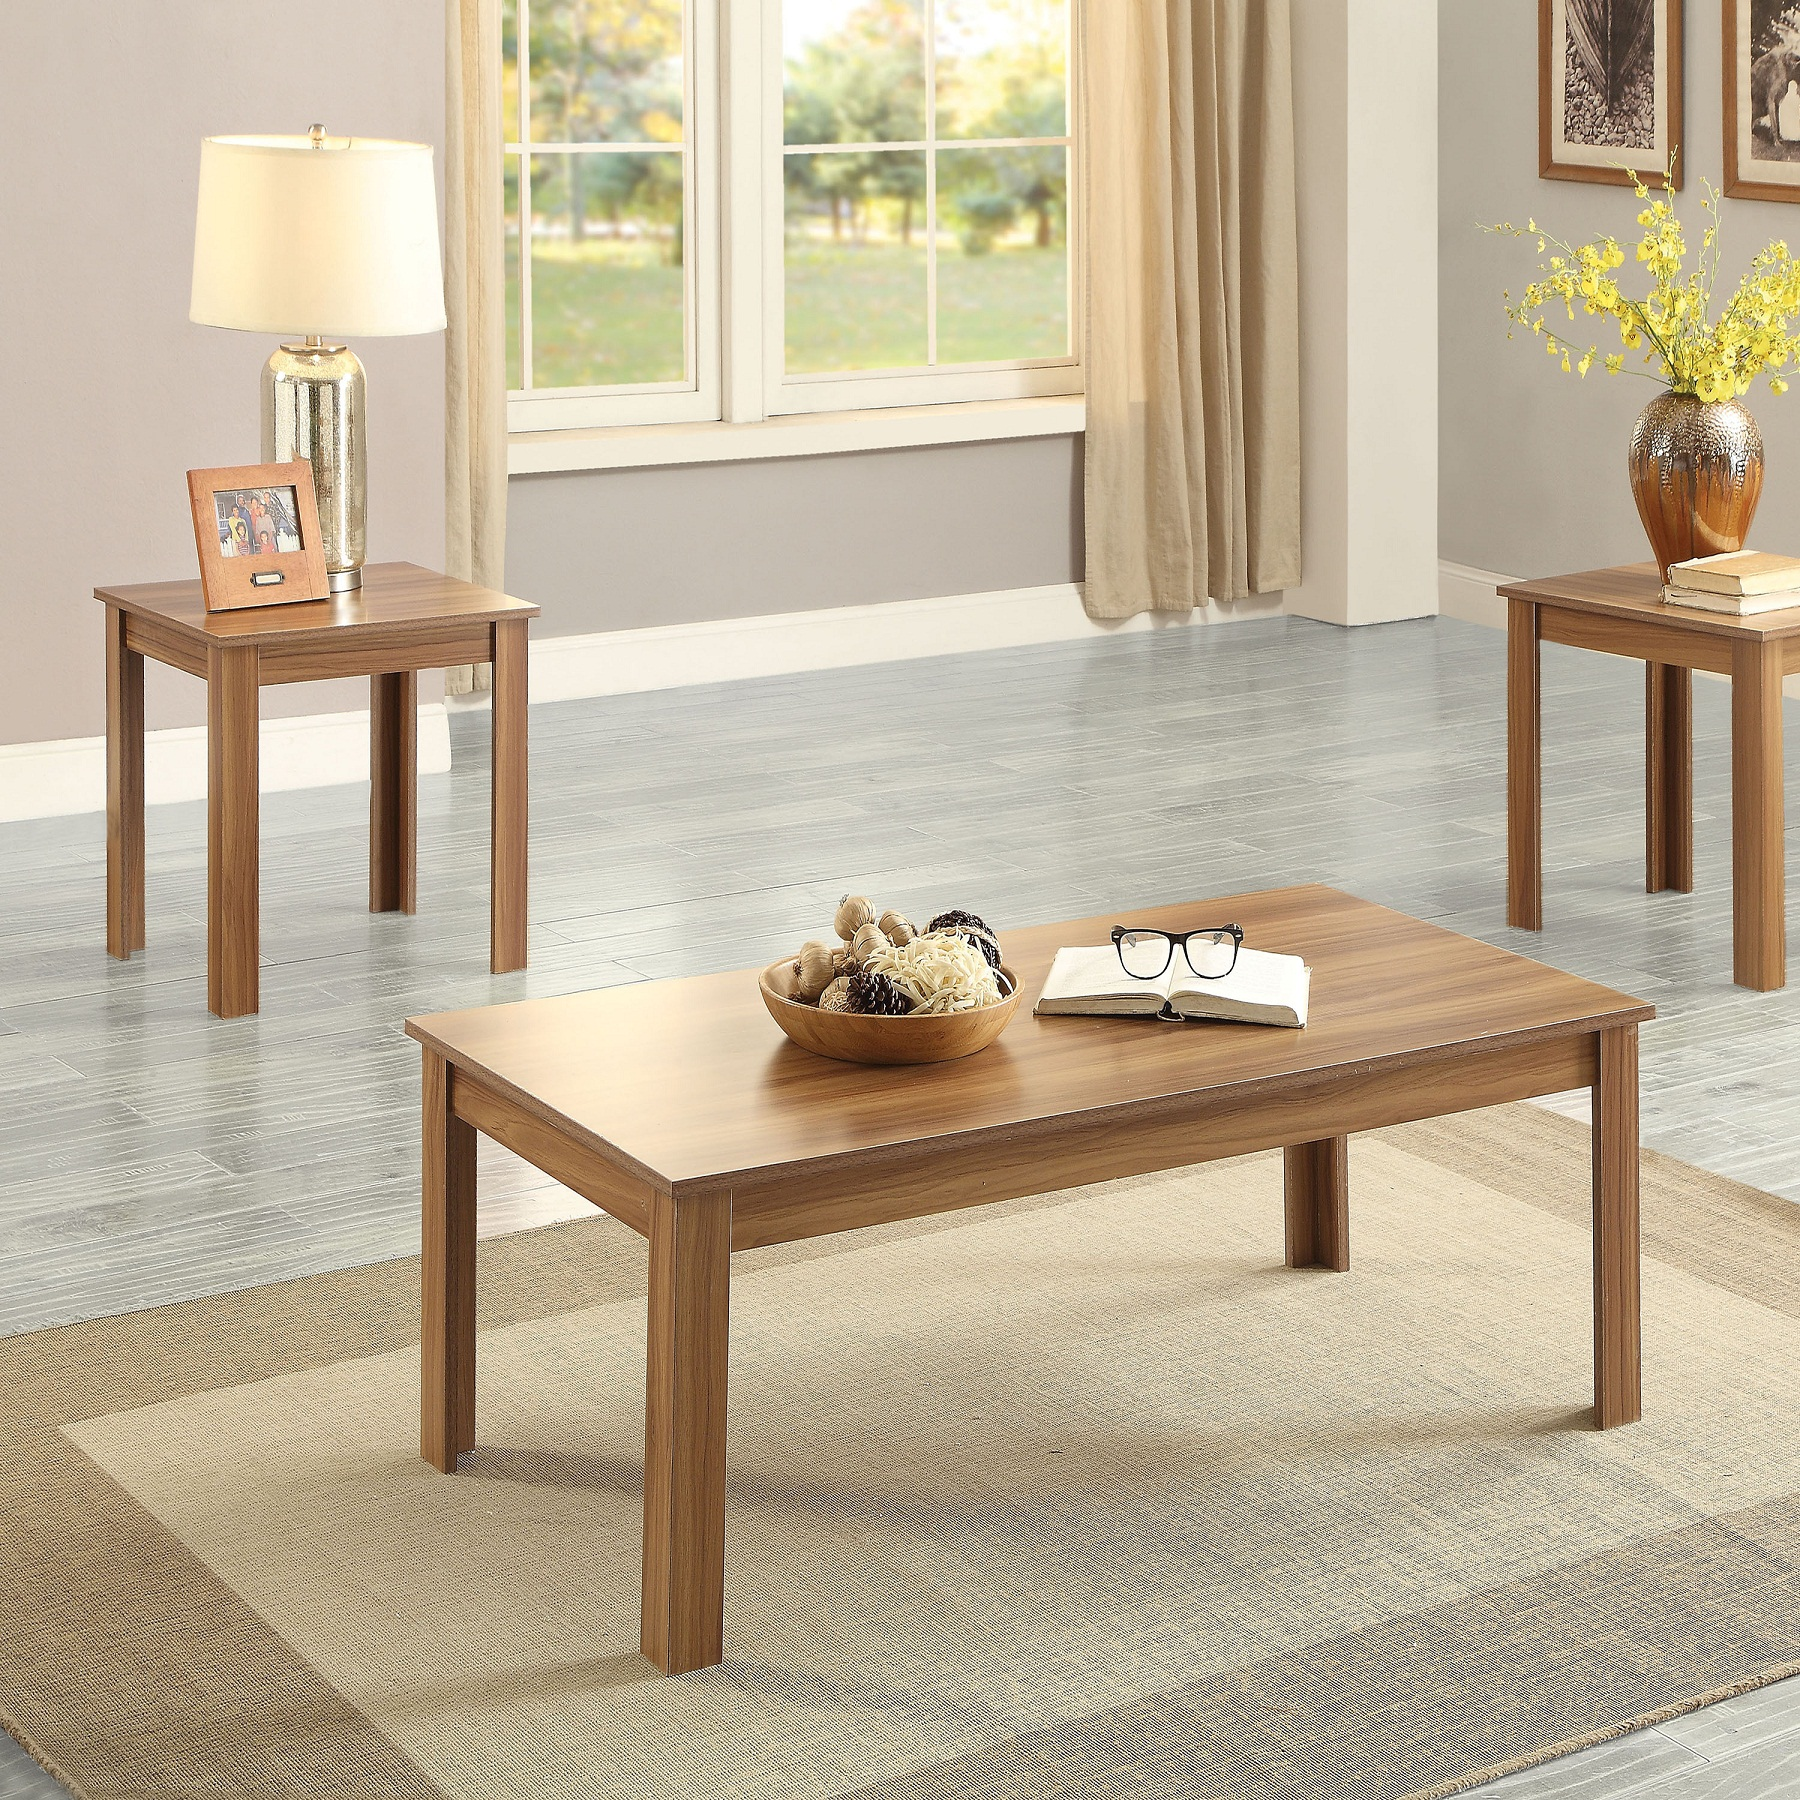 Buy Teak Coffee and End Tables (Set of 3) Online | TeakLab